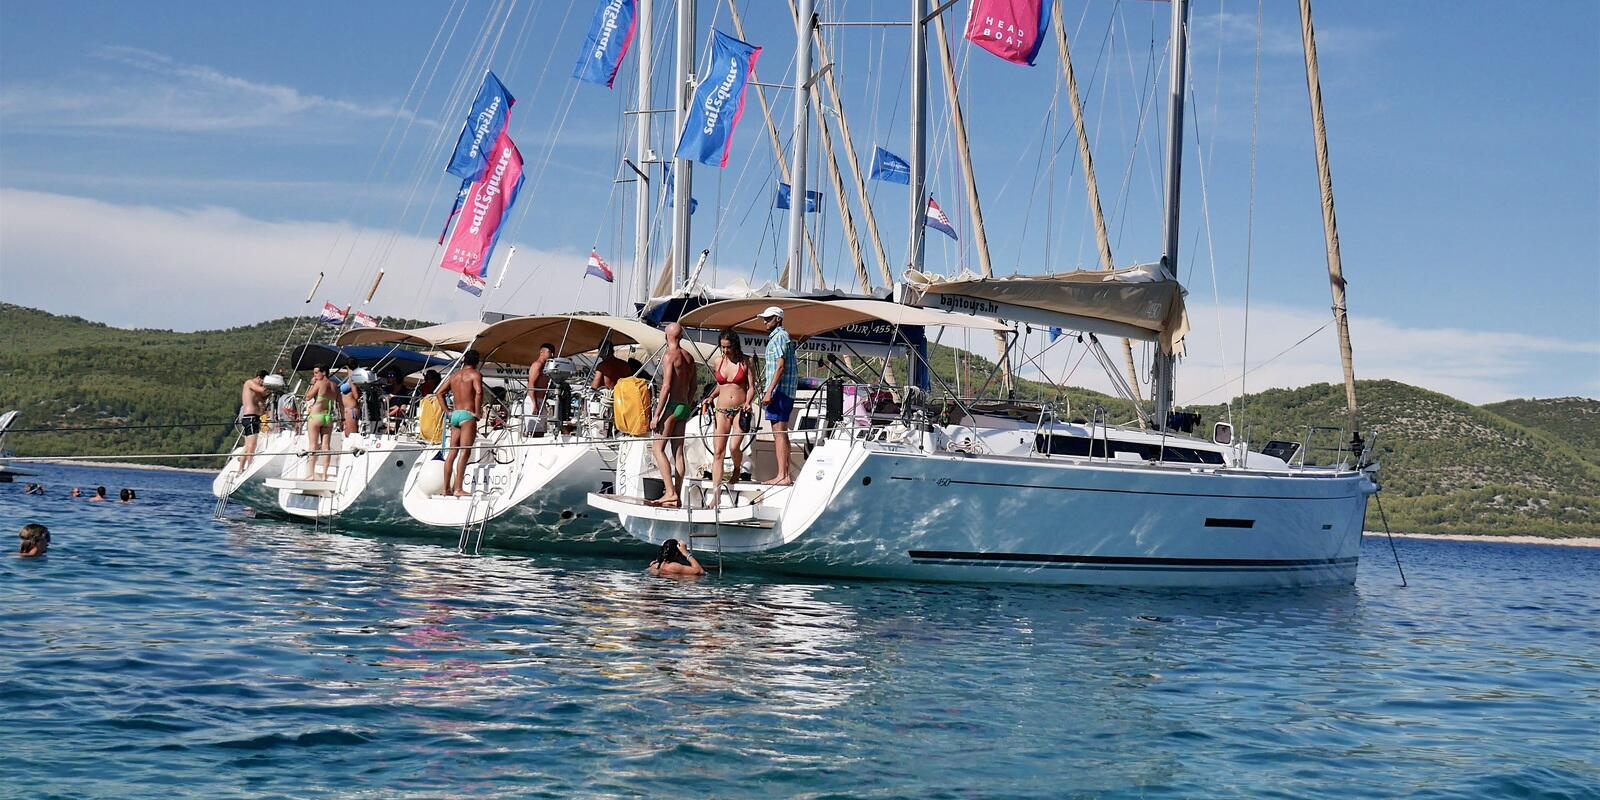 Flotilla on the routes of Ulysses in Ionian Greece - 2nd week